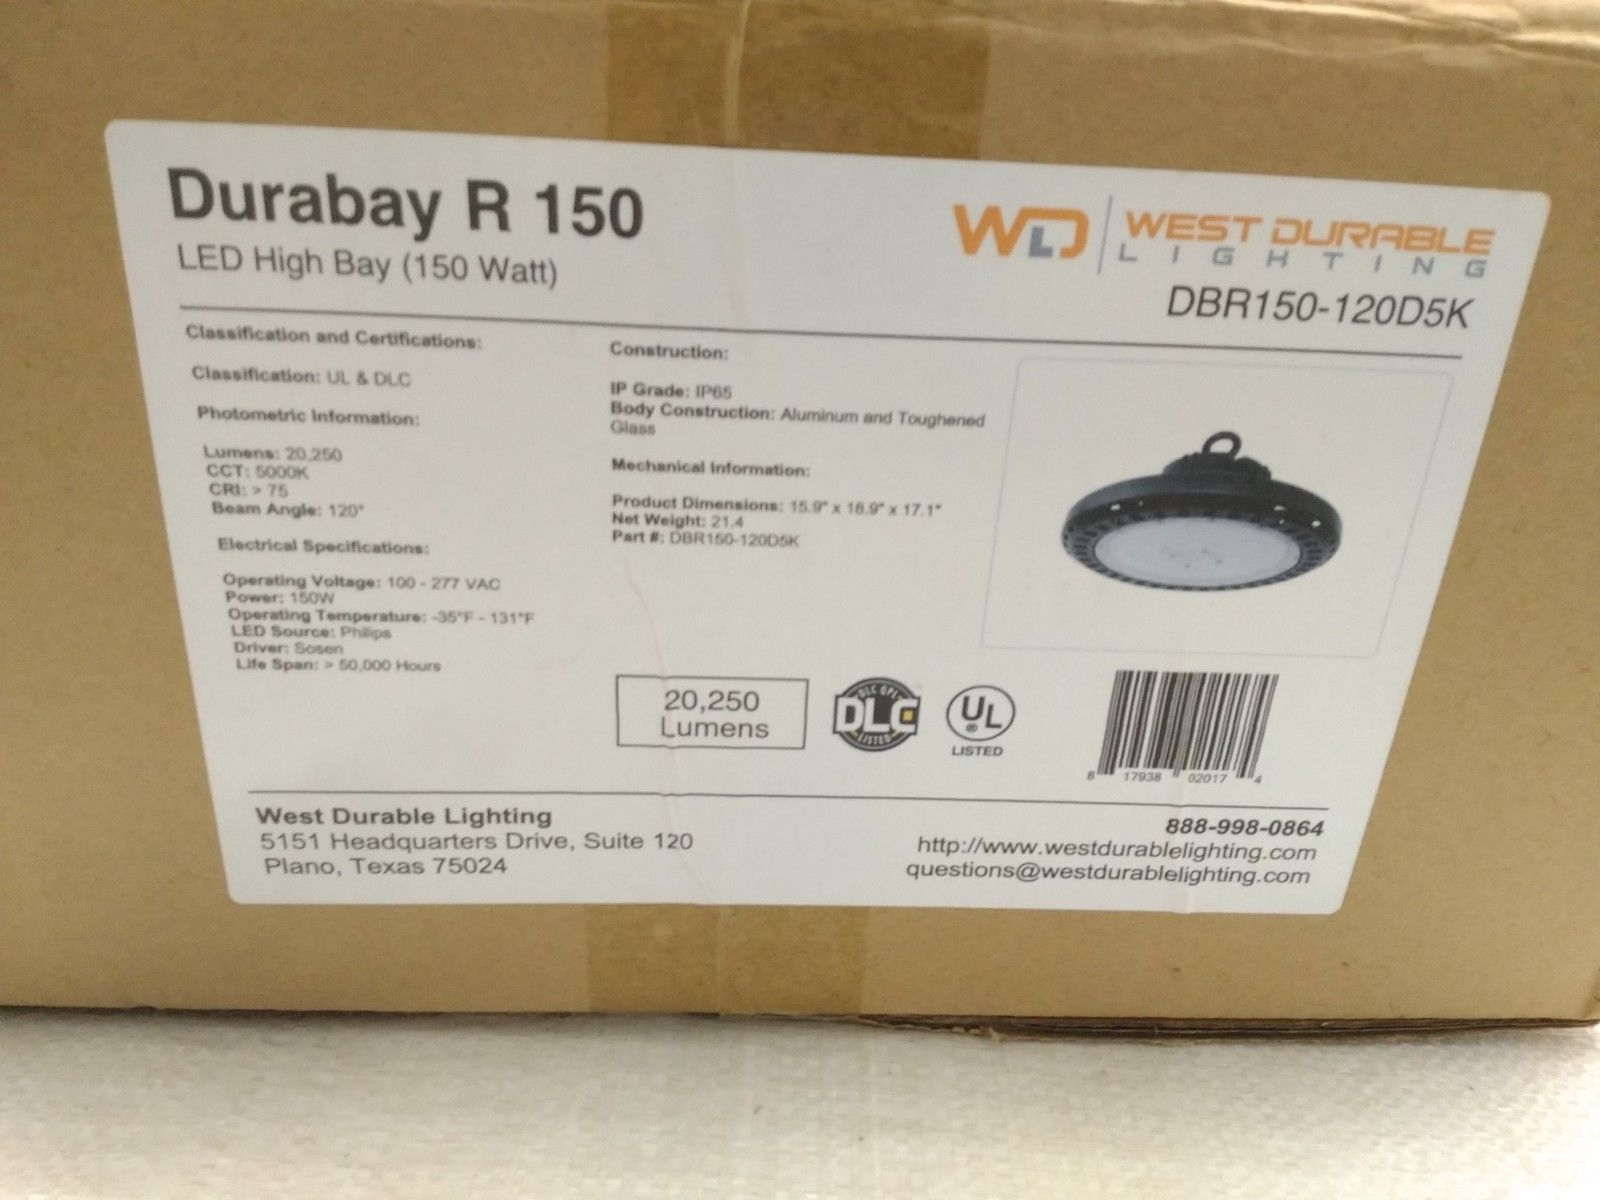 Durabay 150 Watt High Bay Light West Durable Lighting Part # DBR150-120D5K